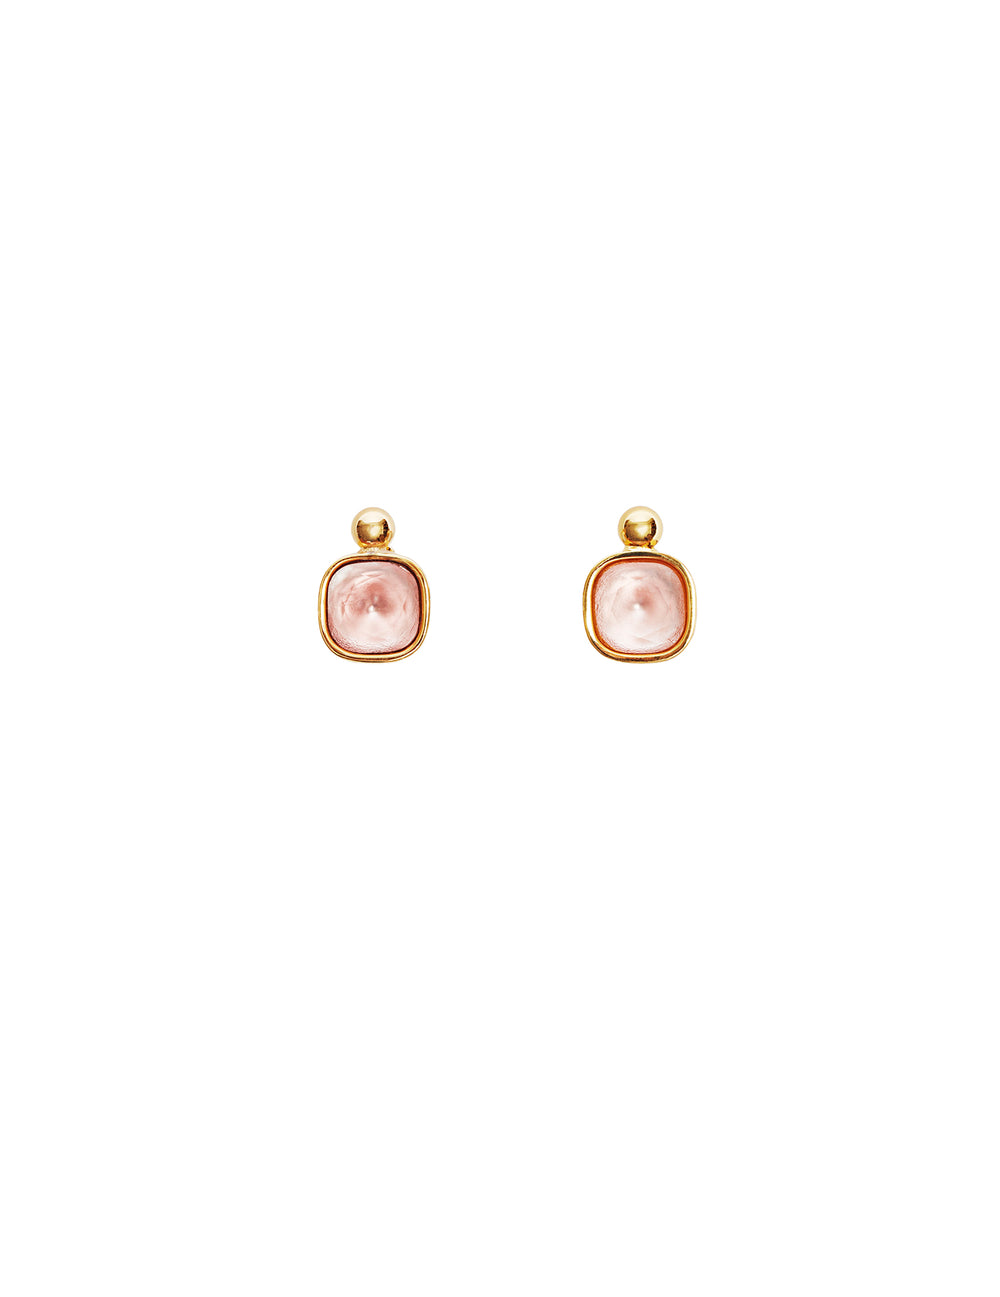 Tilly pink earrings